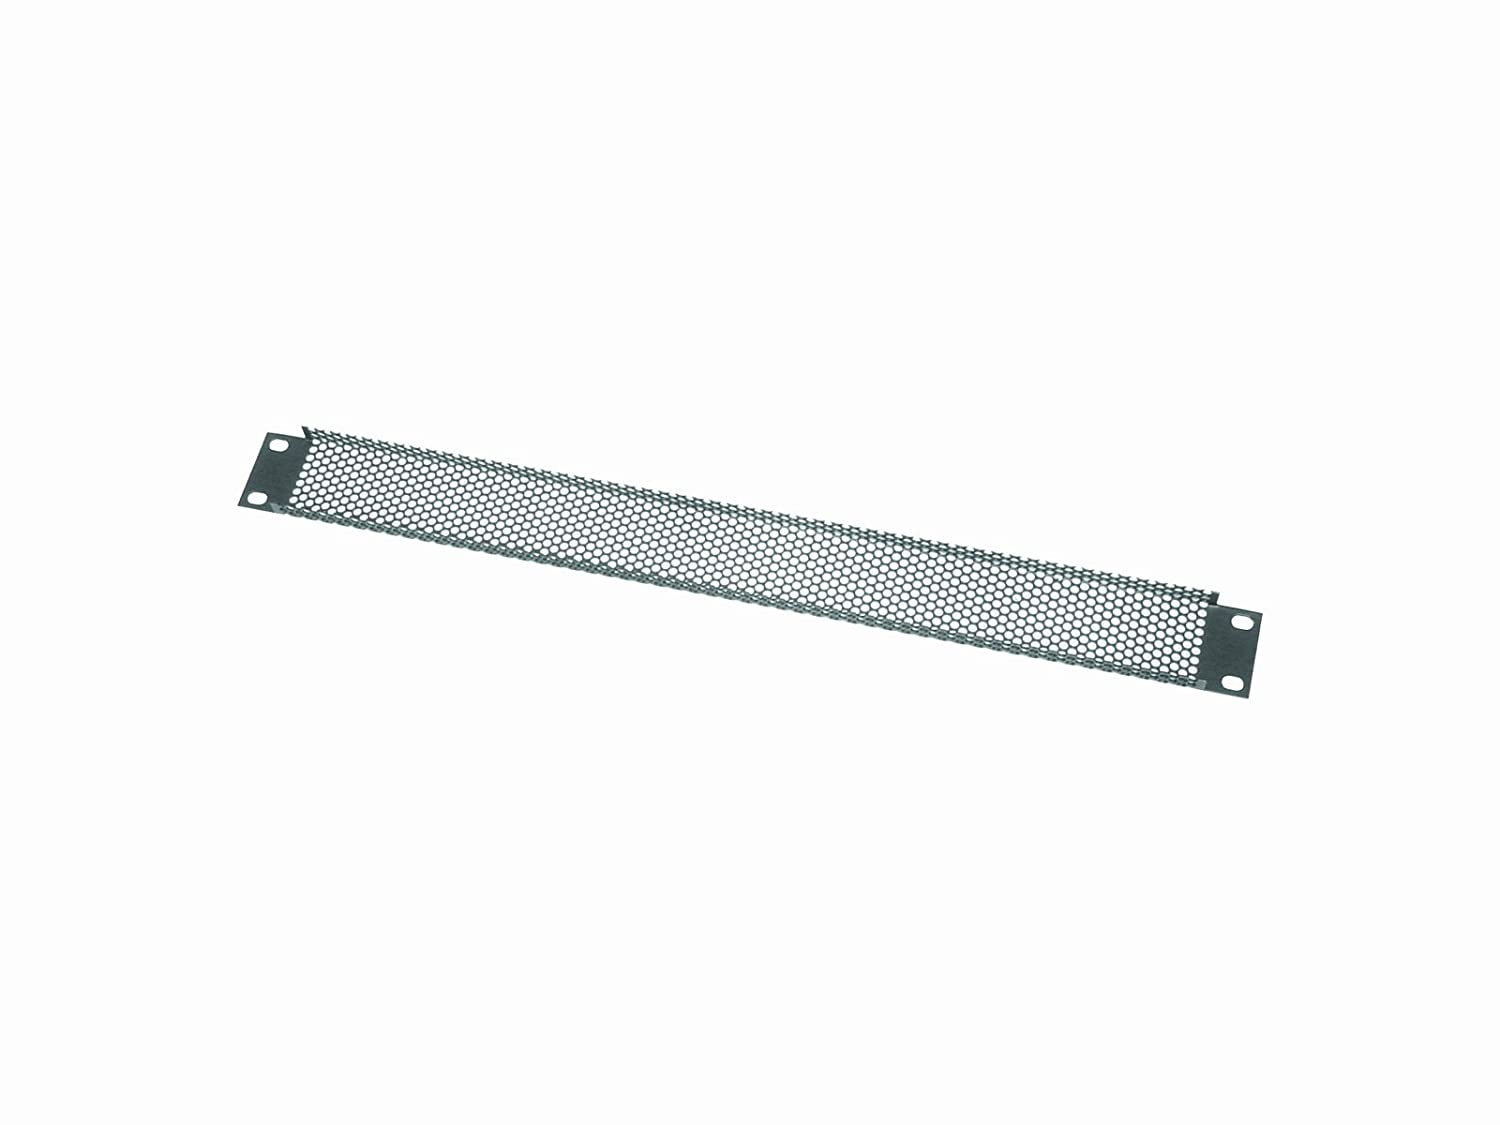 Odyssey ARPVLP1 1 Space Fine Perforated Panel Rack Accessory Odyssey Innovative Designs